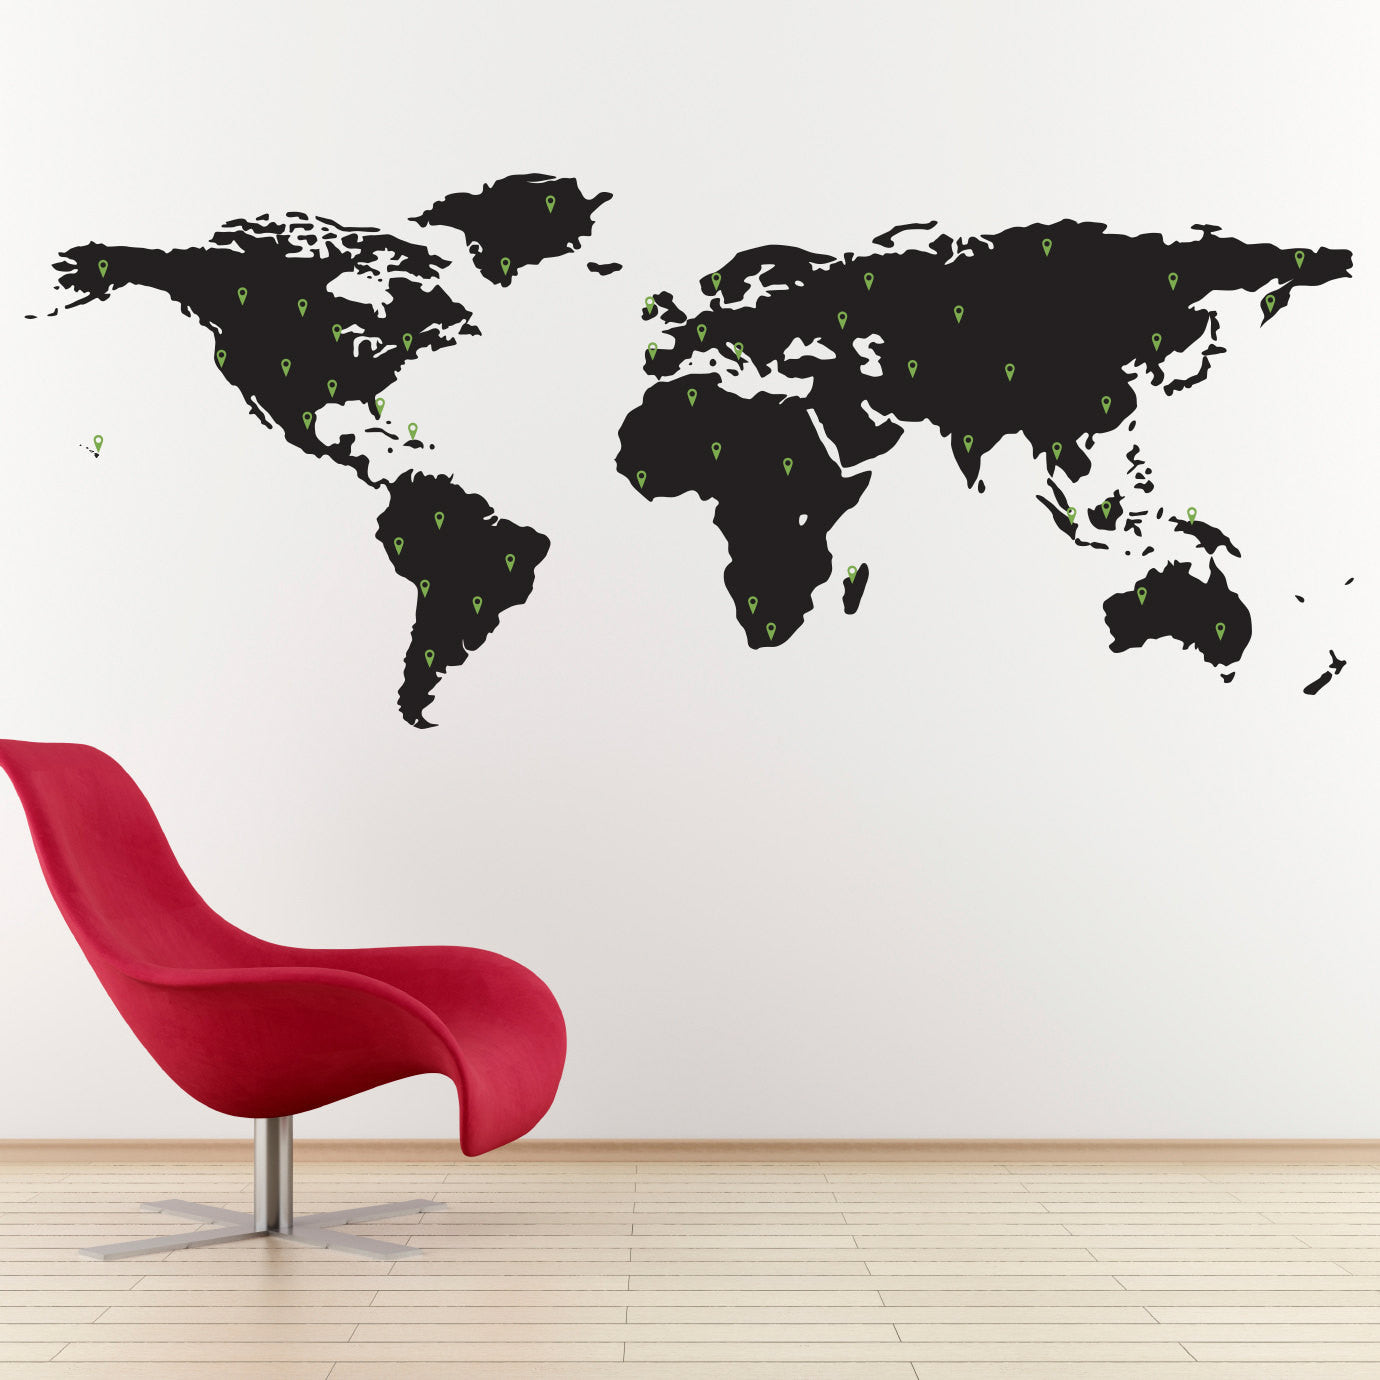 World Map Decal With 50 Marking Pins   Geography Wall Art   Large Part 33